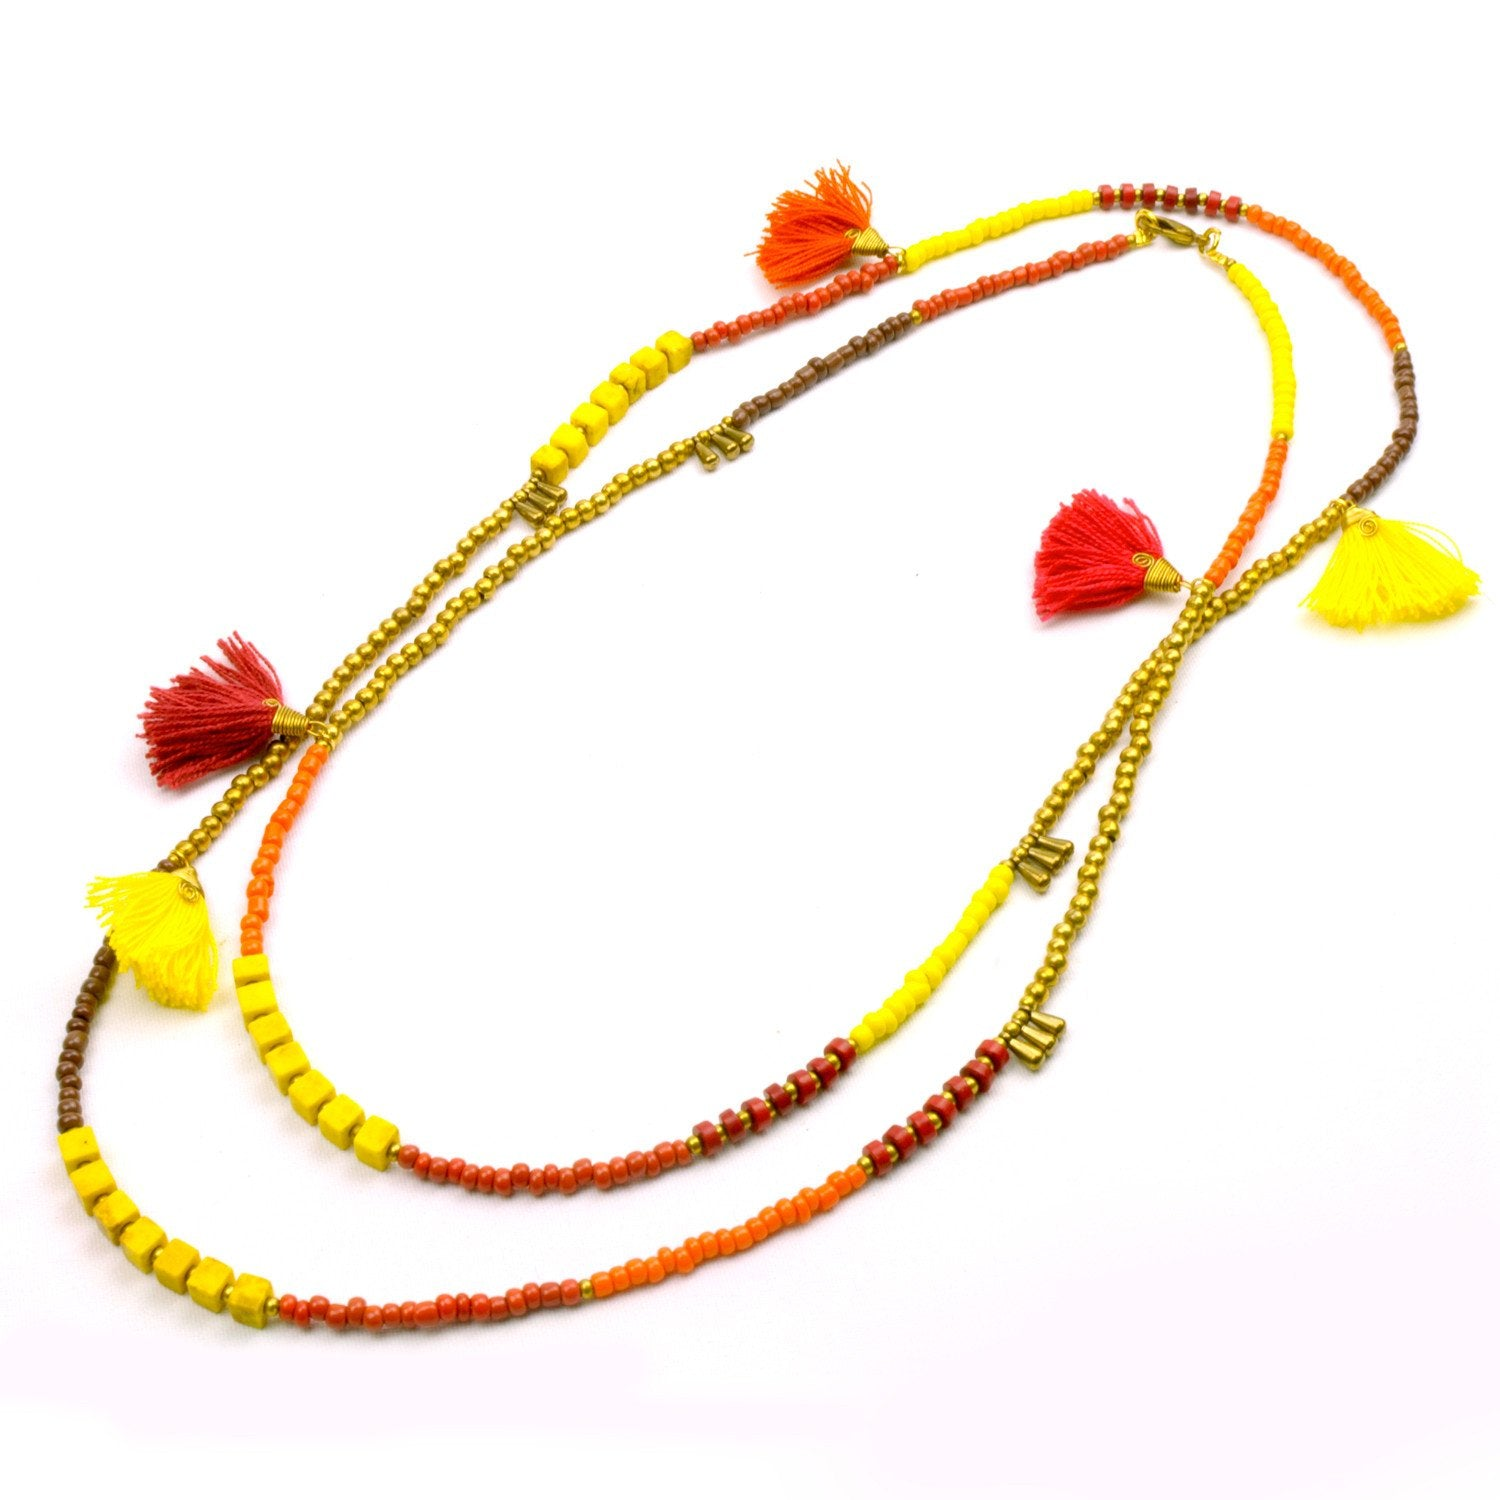 Boho Jewelry Collection Kerala Necklace, Fire